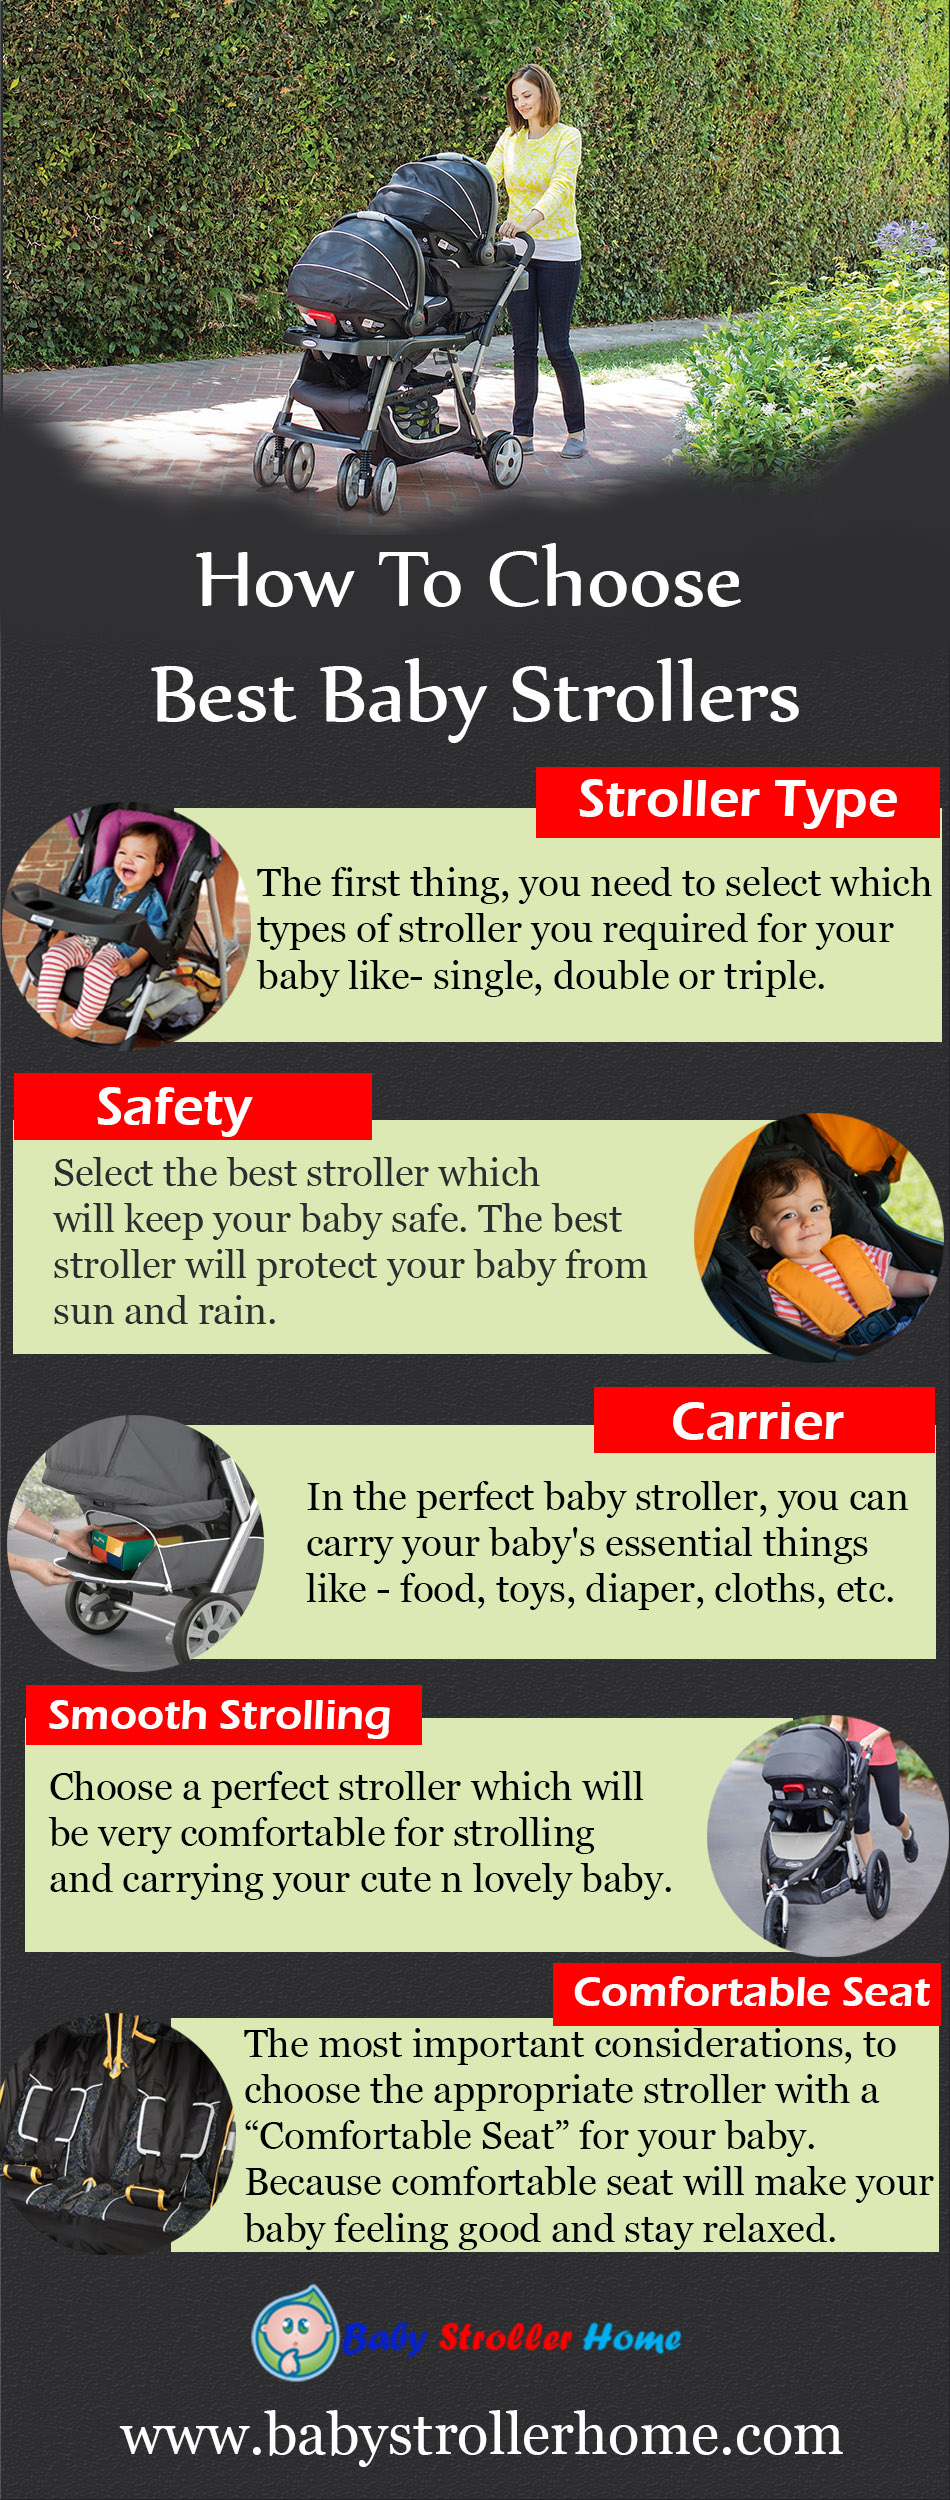 How To Choose Best Baby Strollers